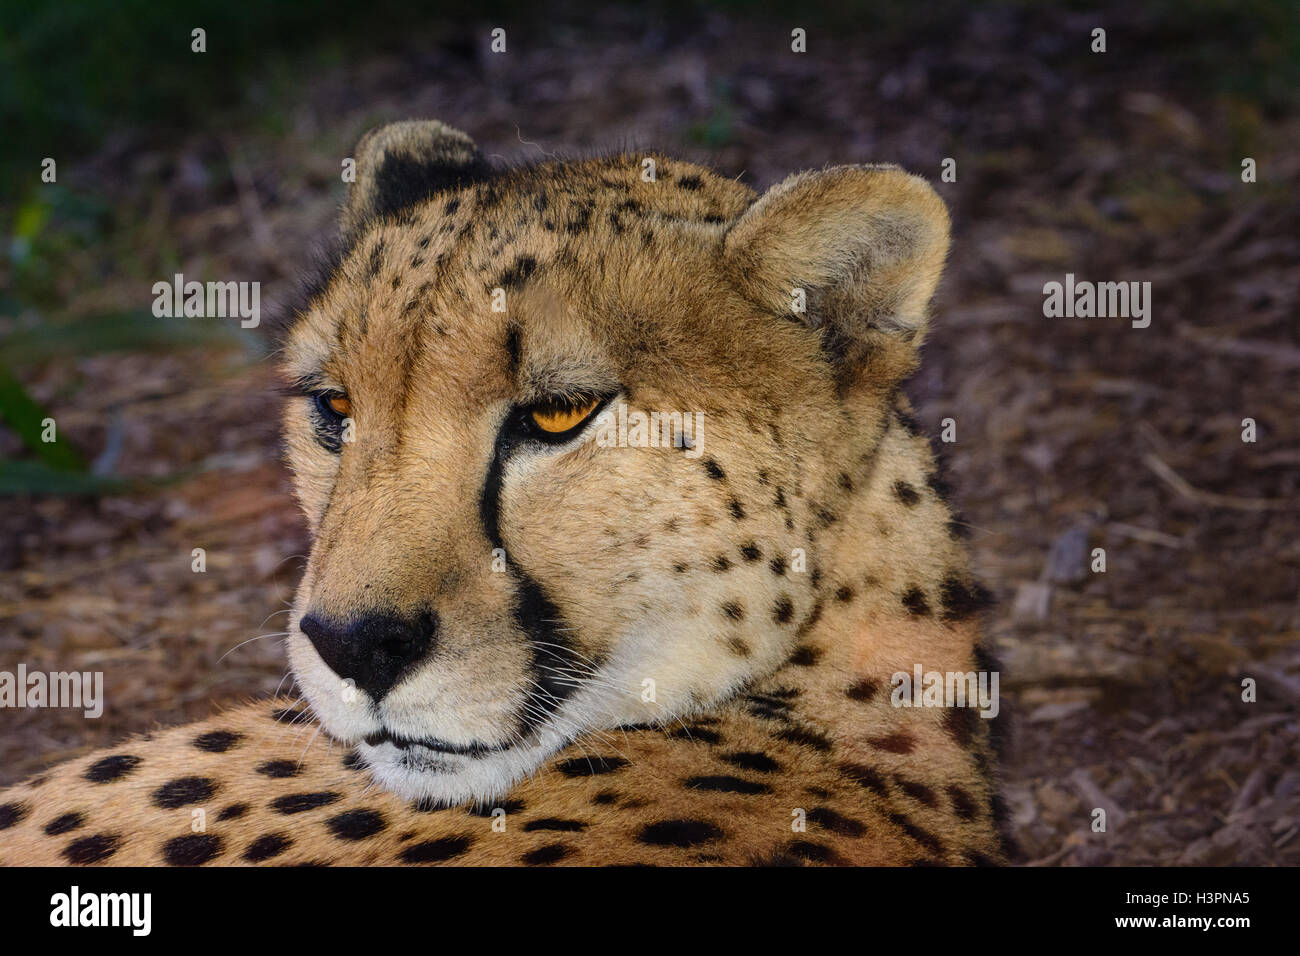 Cheetah  (Acinonyx jubatus) relaxing in the shade, laying down with his head raised and looking behind him. - Stock Image